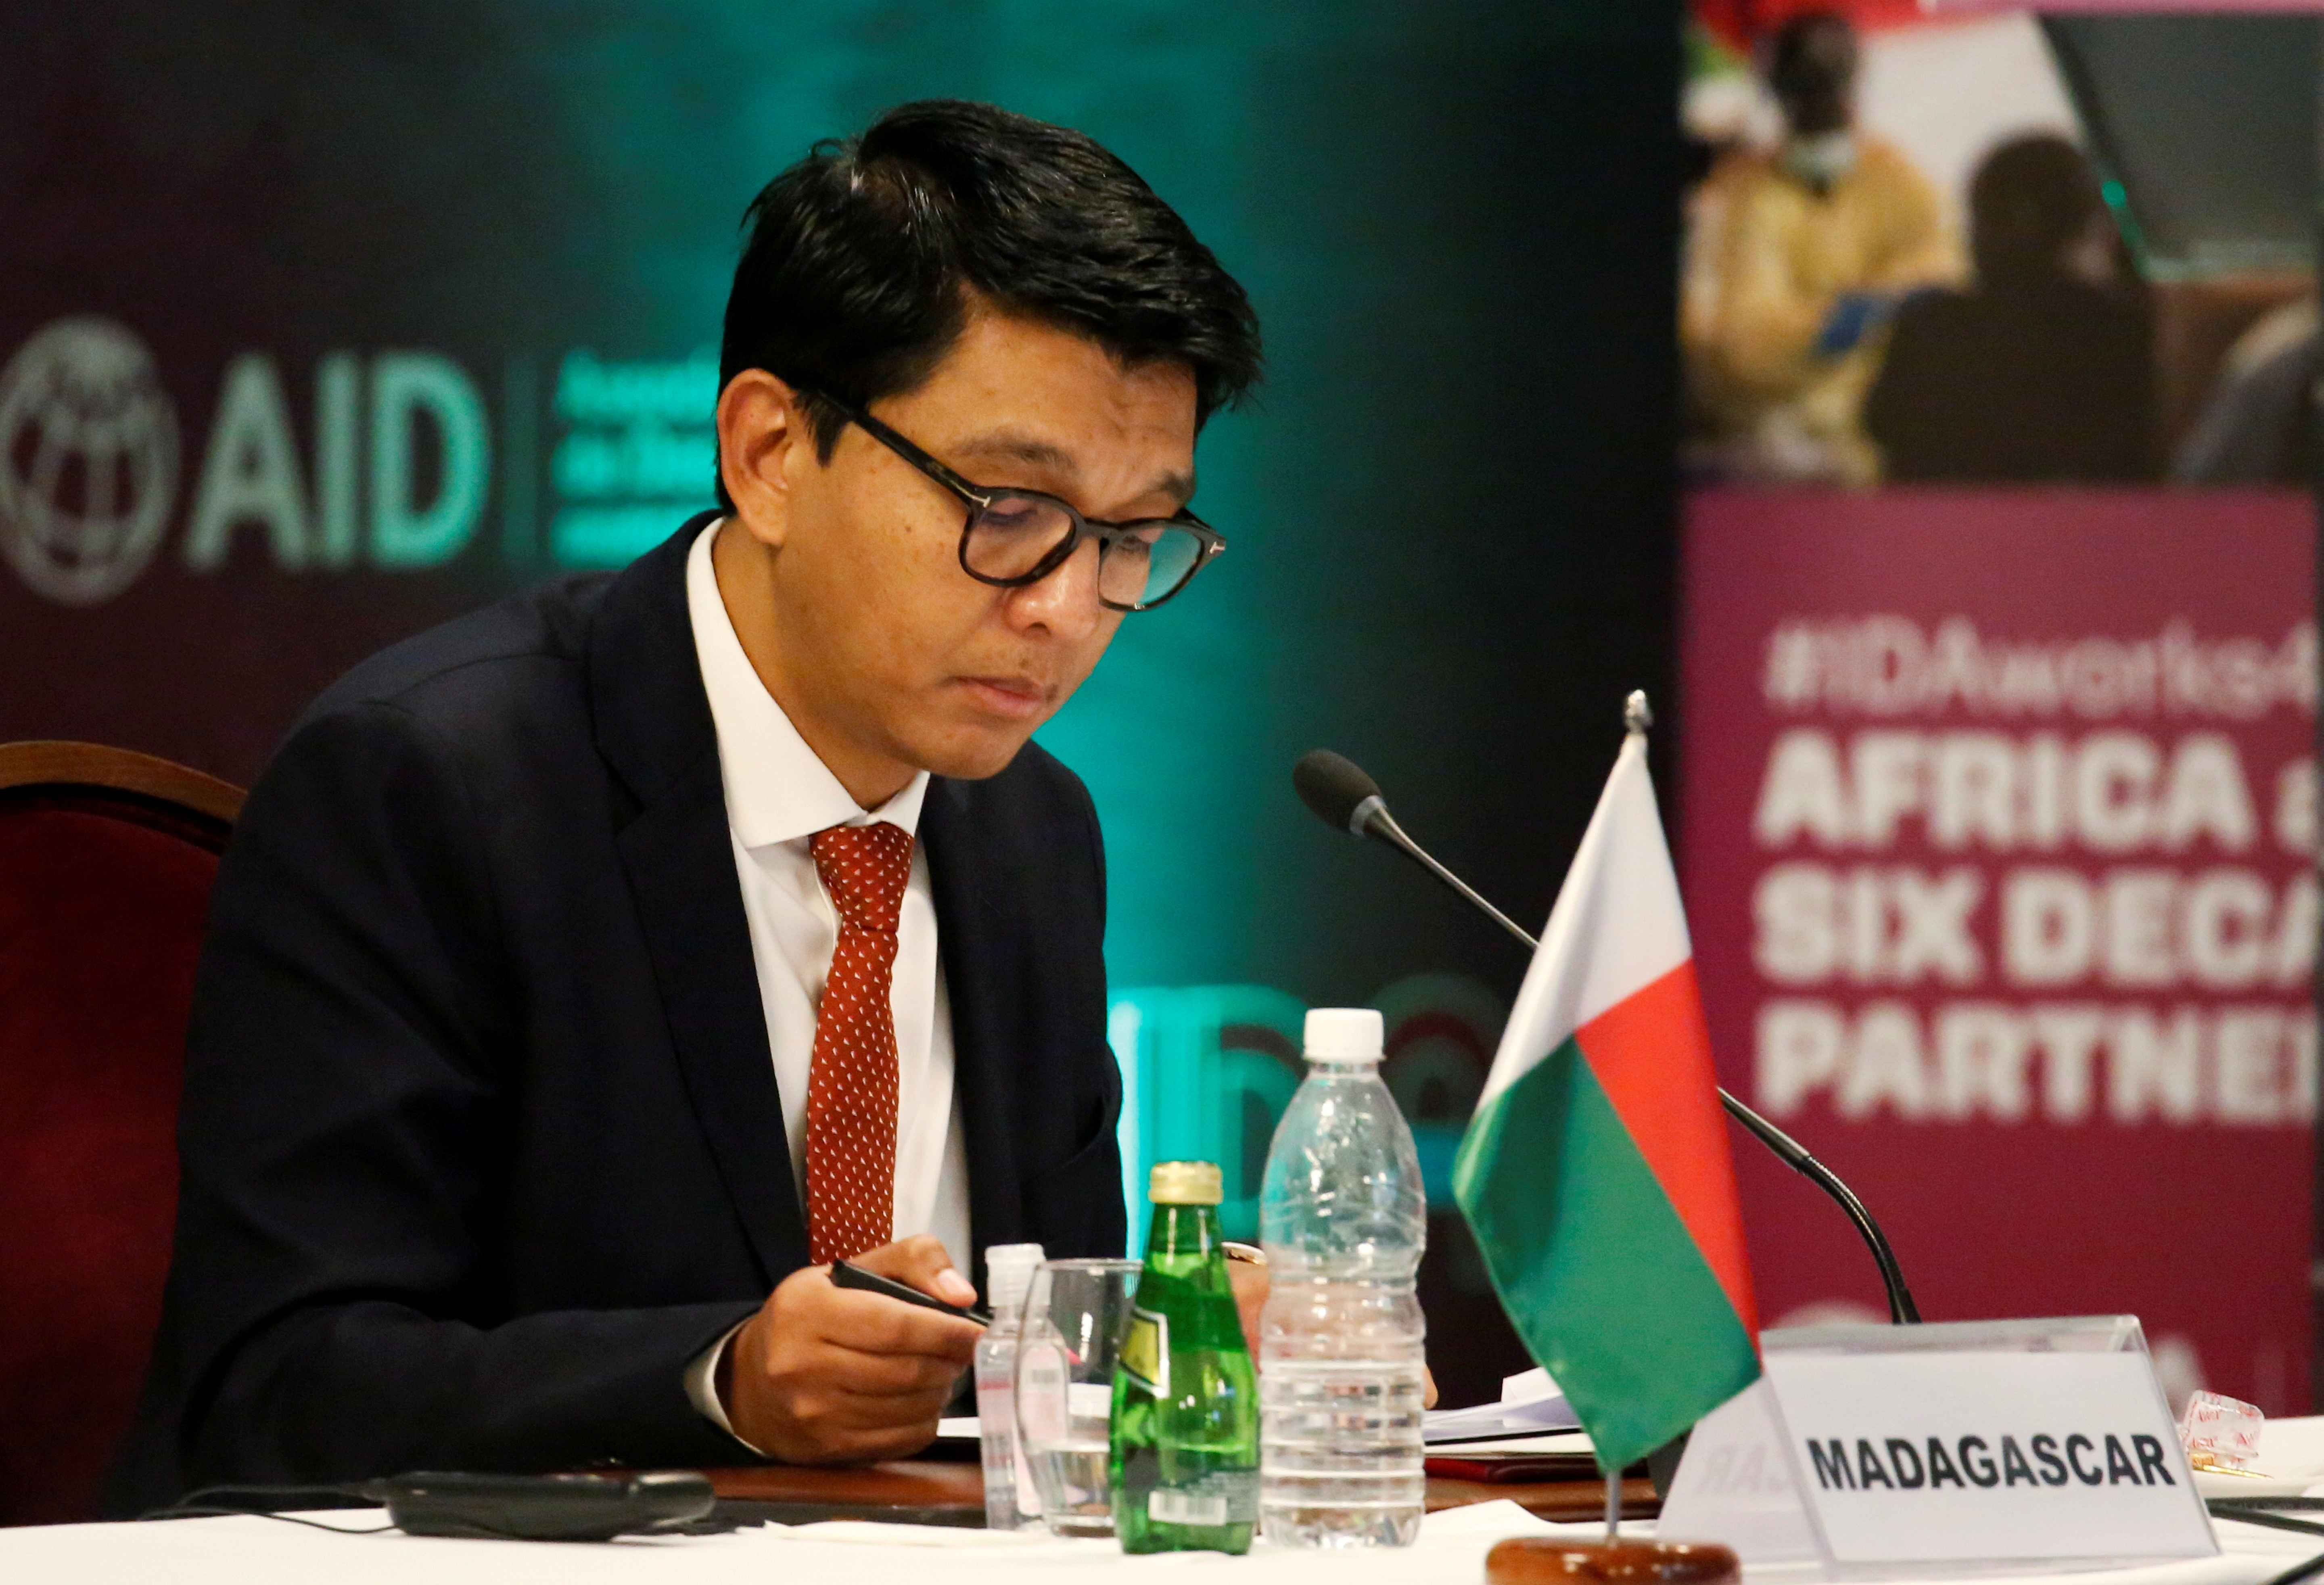 Madagascar's President Andry Rajoelina attends a meeting to discuss the 20th replenishment of the World Bank's International Development Association, in Abidjan, Ivory Coast July 15, 2021. REUTERS/Luc Gnago/File Photo